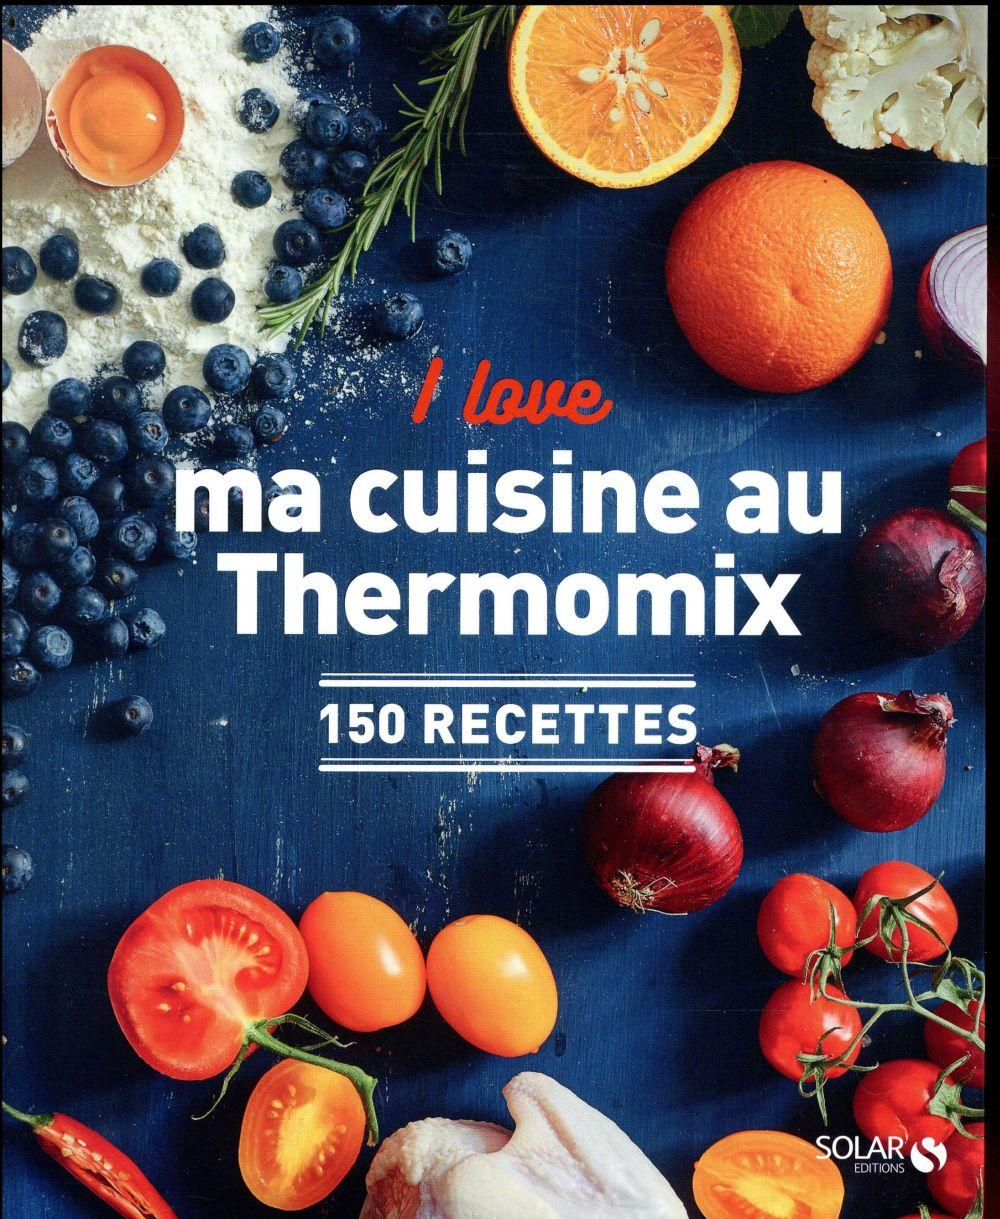 acheter livre thermomix elegant thermomix tm occasion with acheter livre thermomix trendy. Black Bedroom Furniture Sets. Home Design Ideas